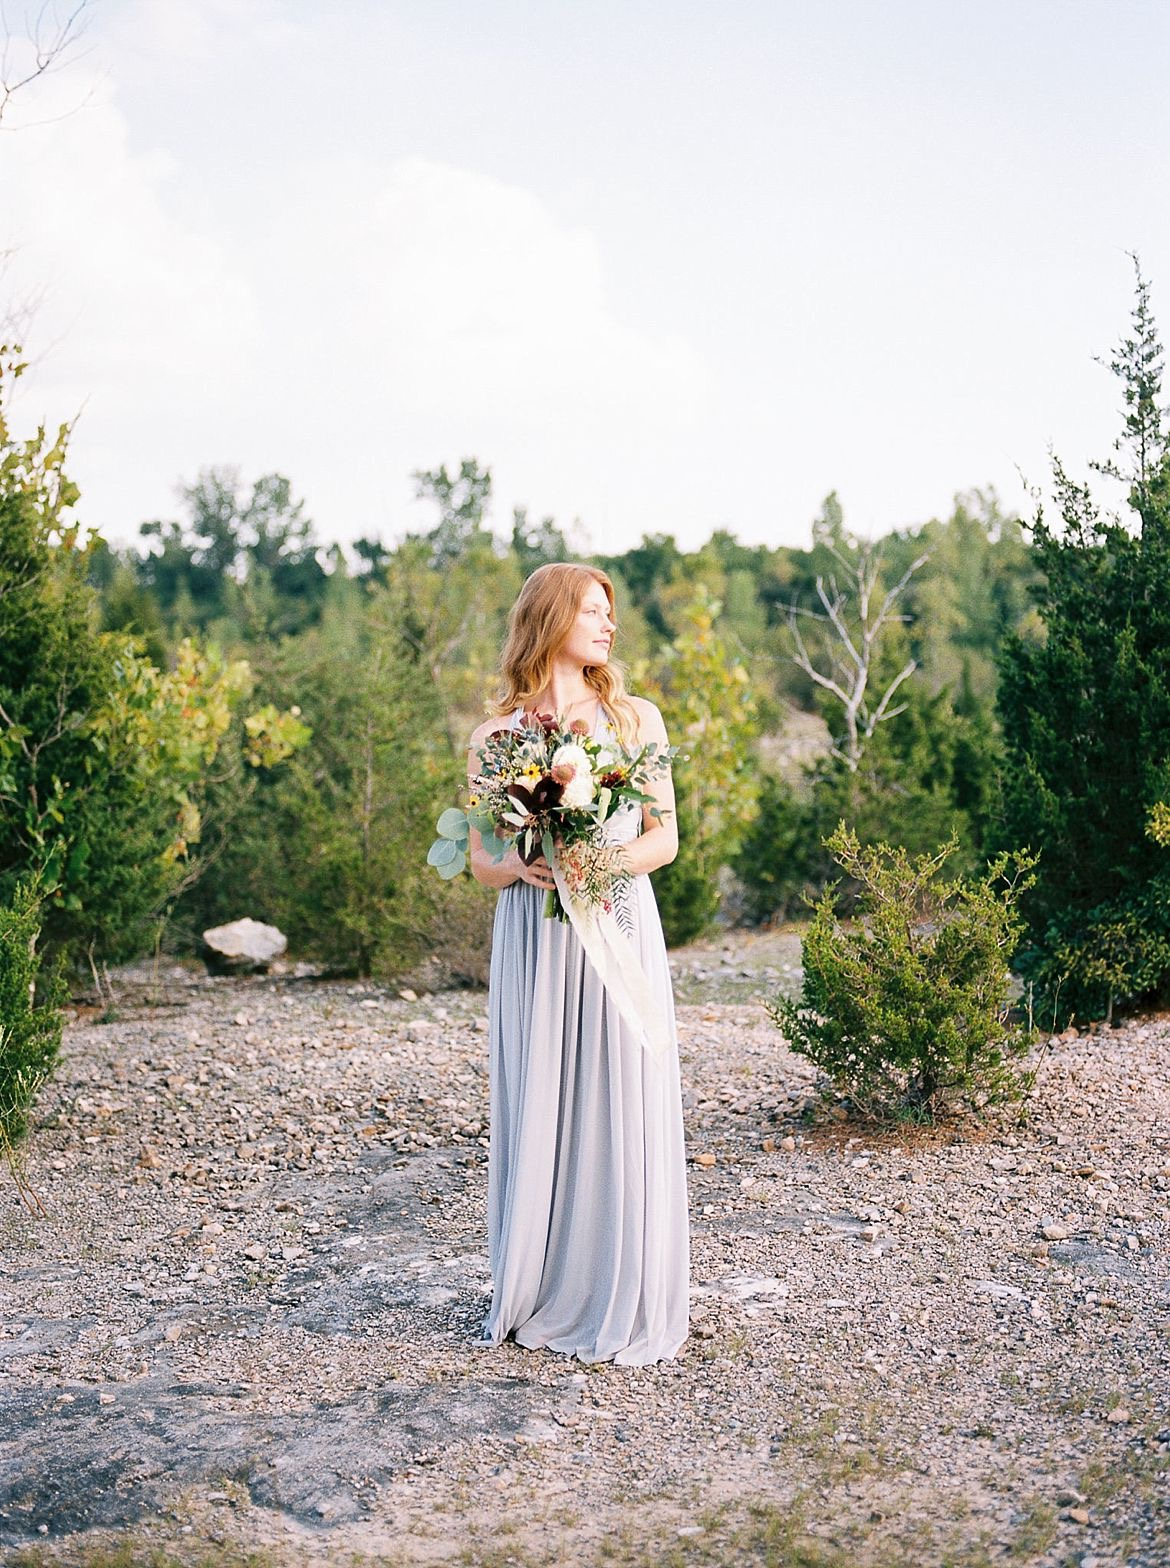 Simple Organic Bridal Inspiration